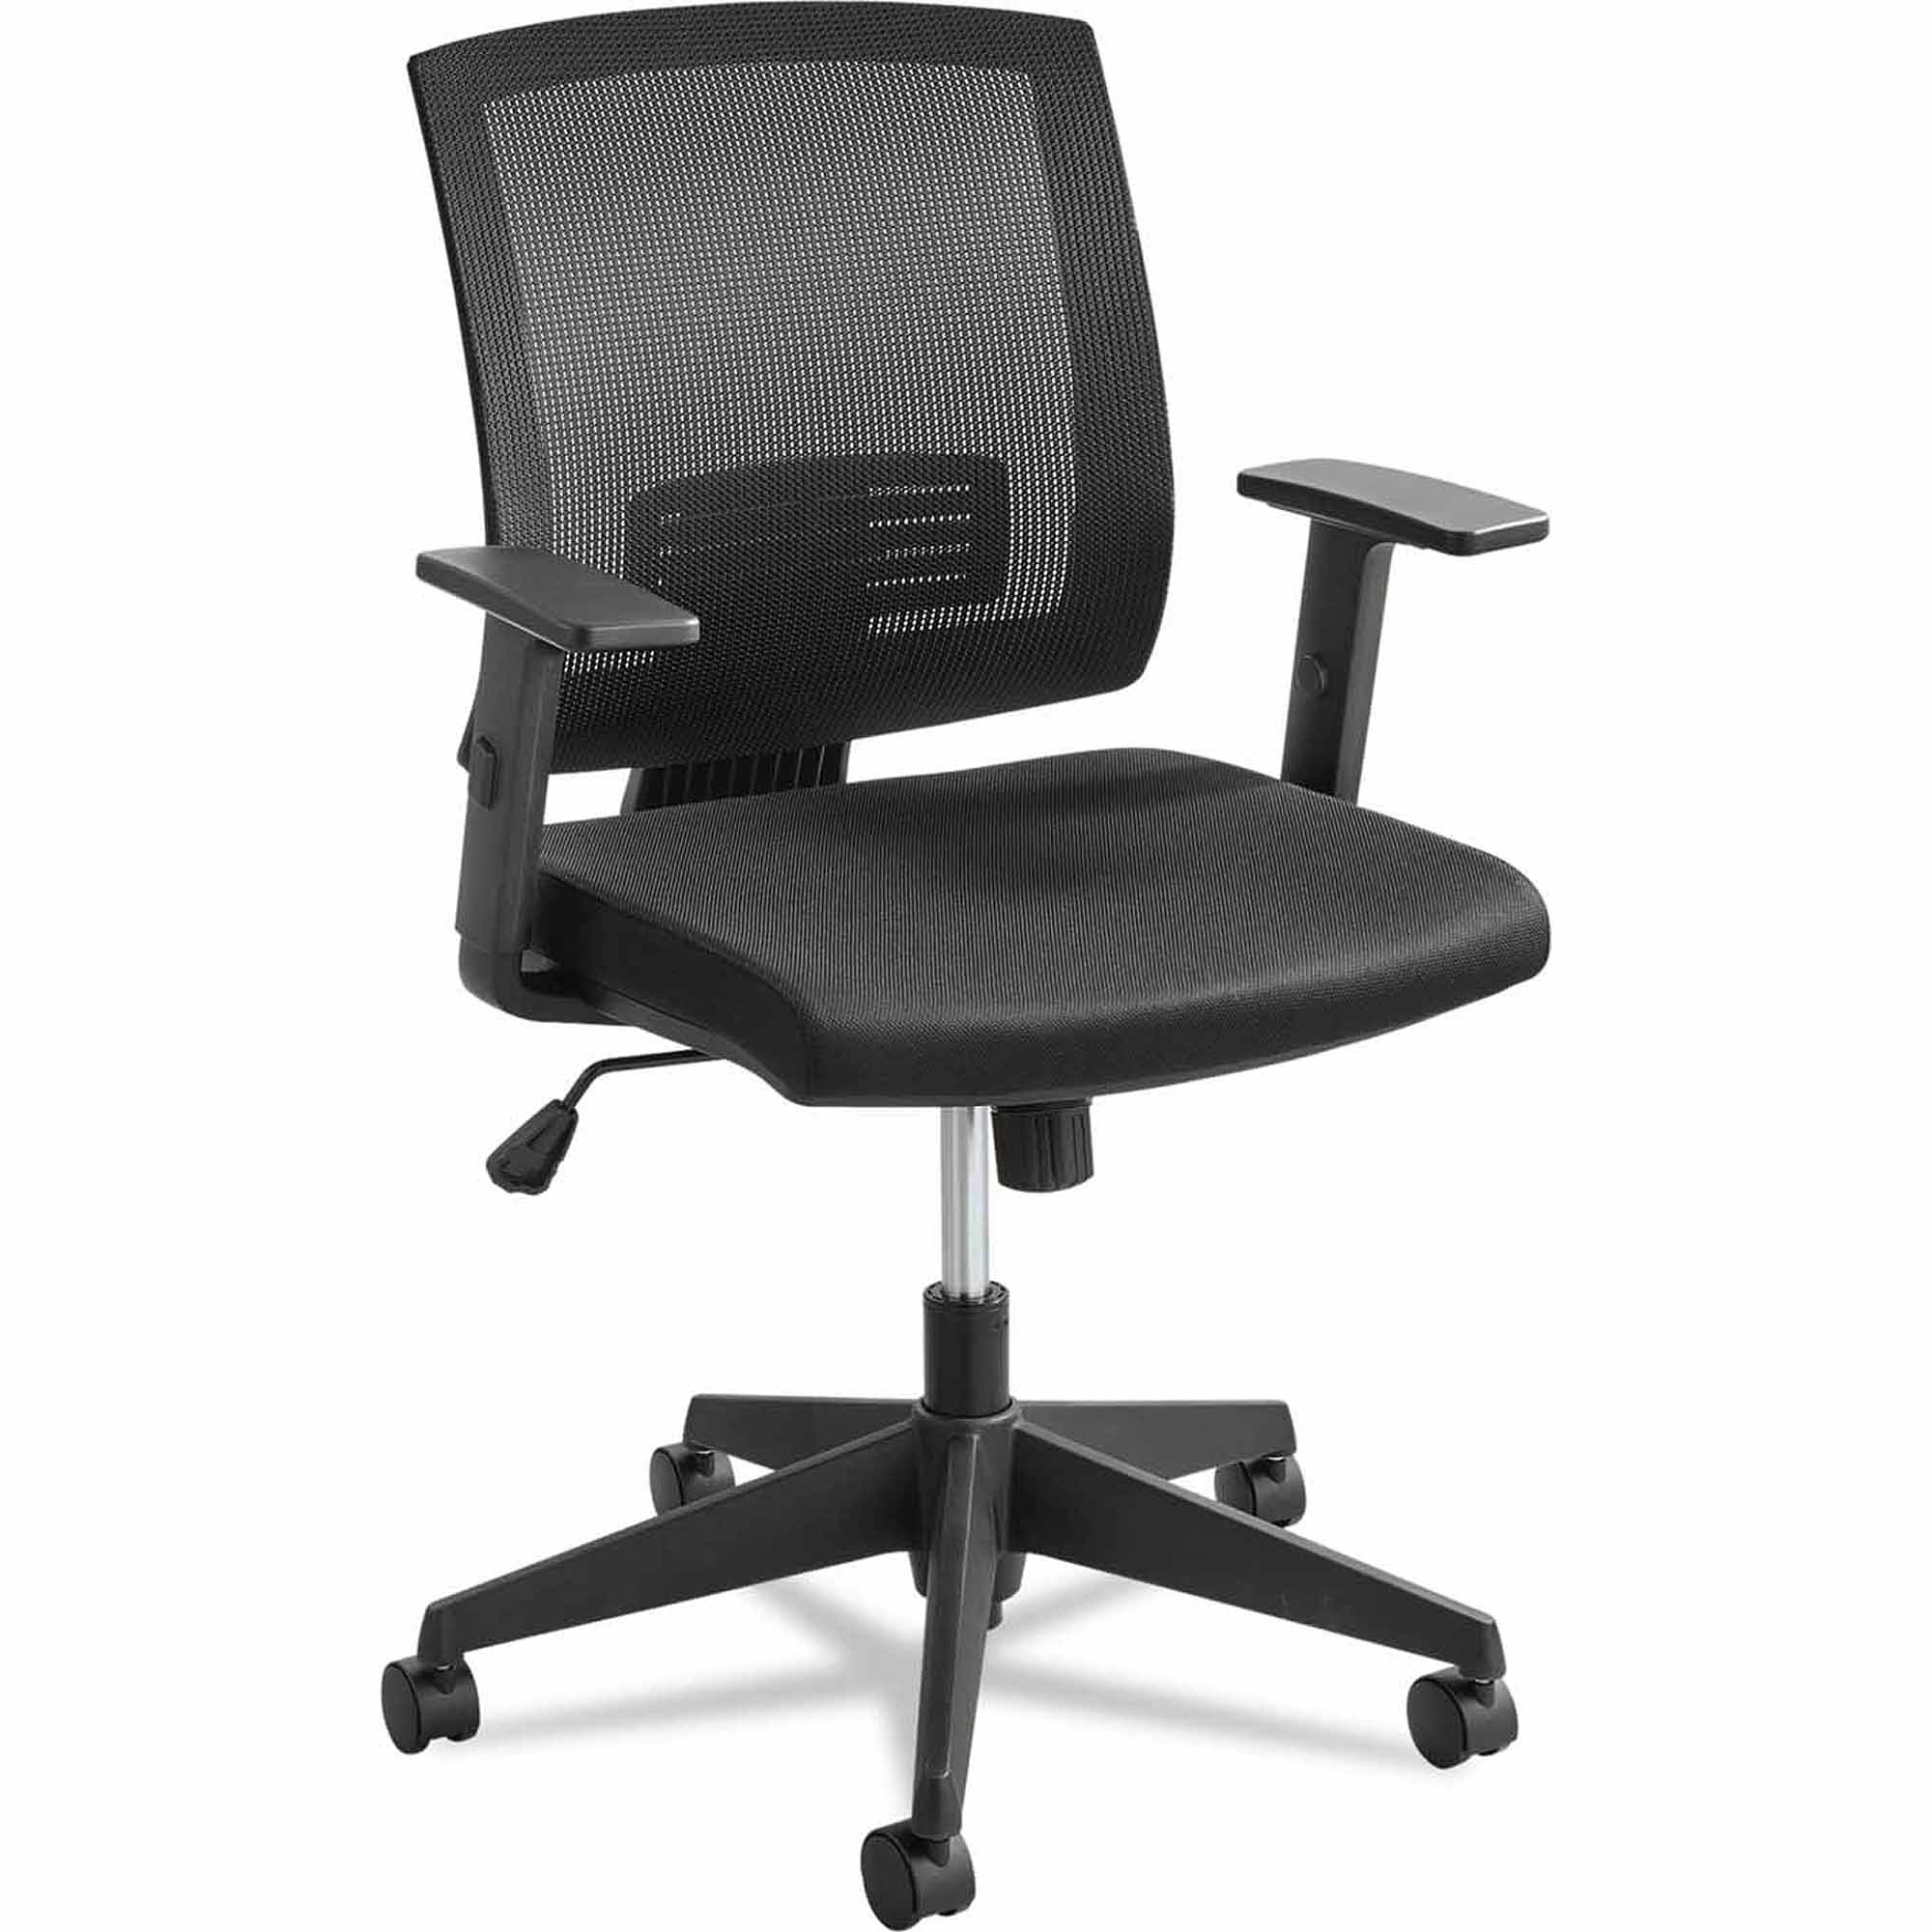 Safco Mezzo Series Task Chair, Mesh Back, Upholstered Seat, Black Seat/Back